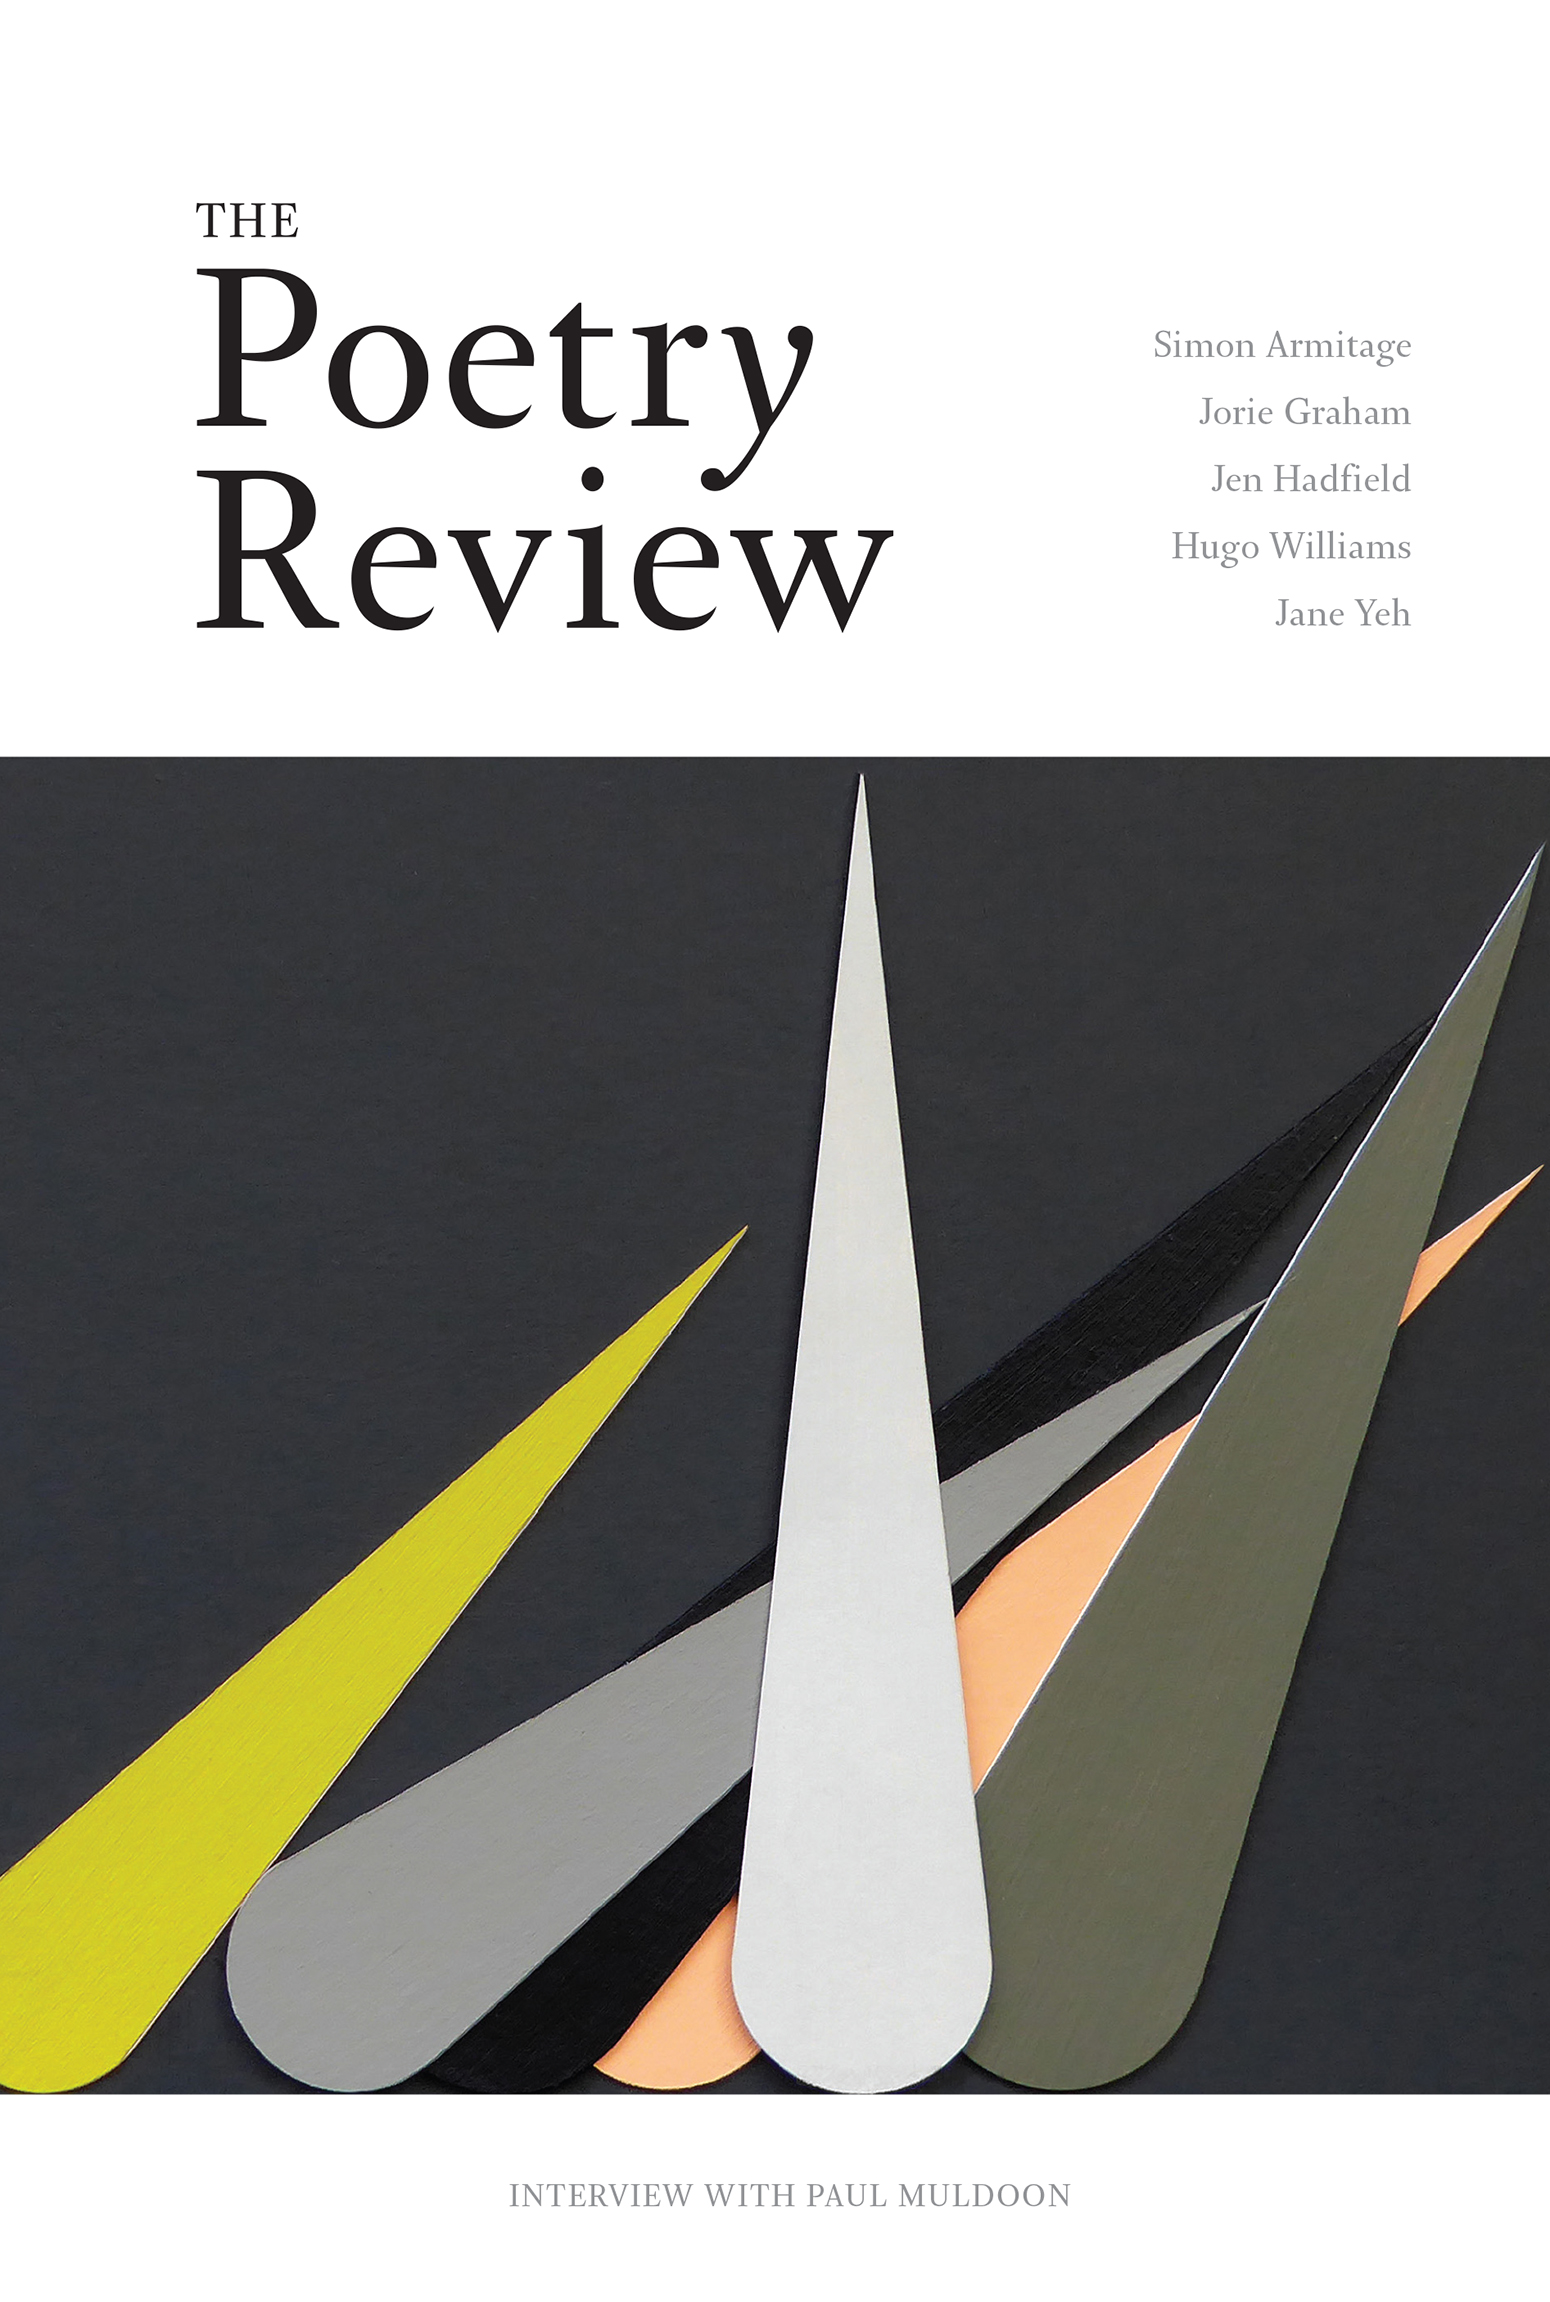 The Poetry Review winter 2016/17 issue